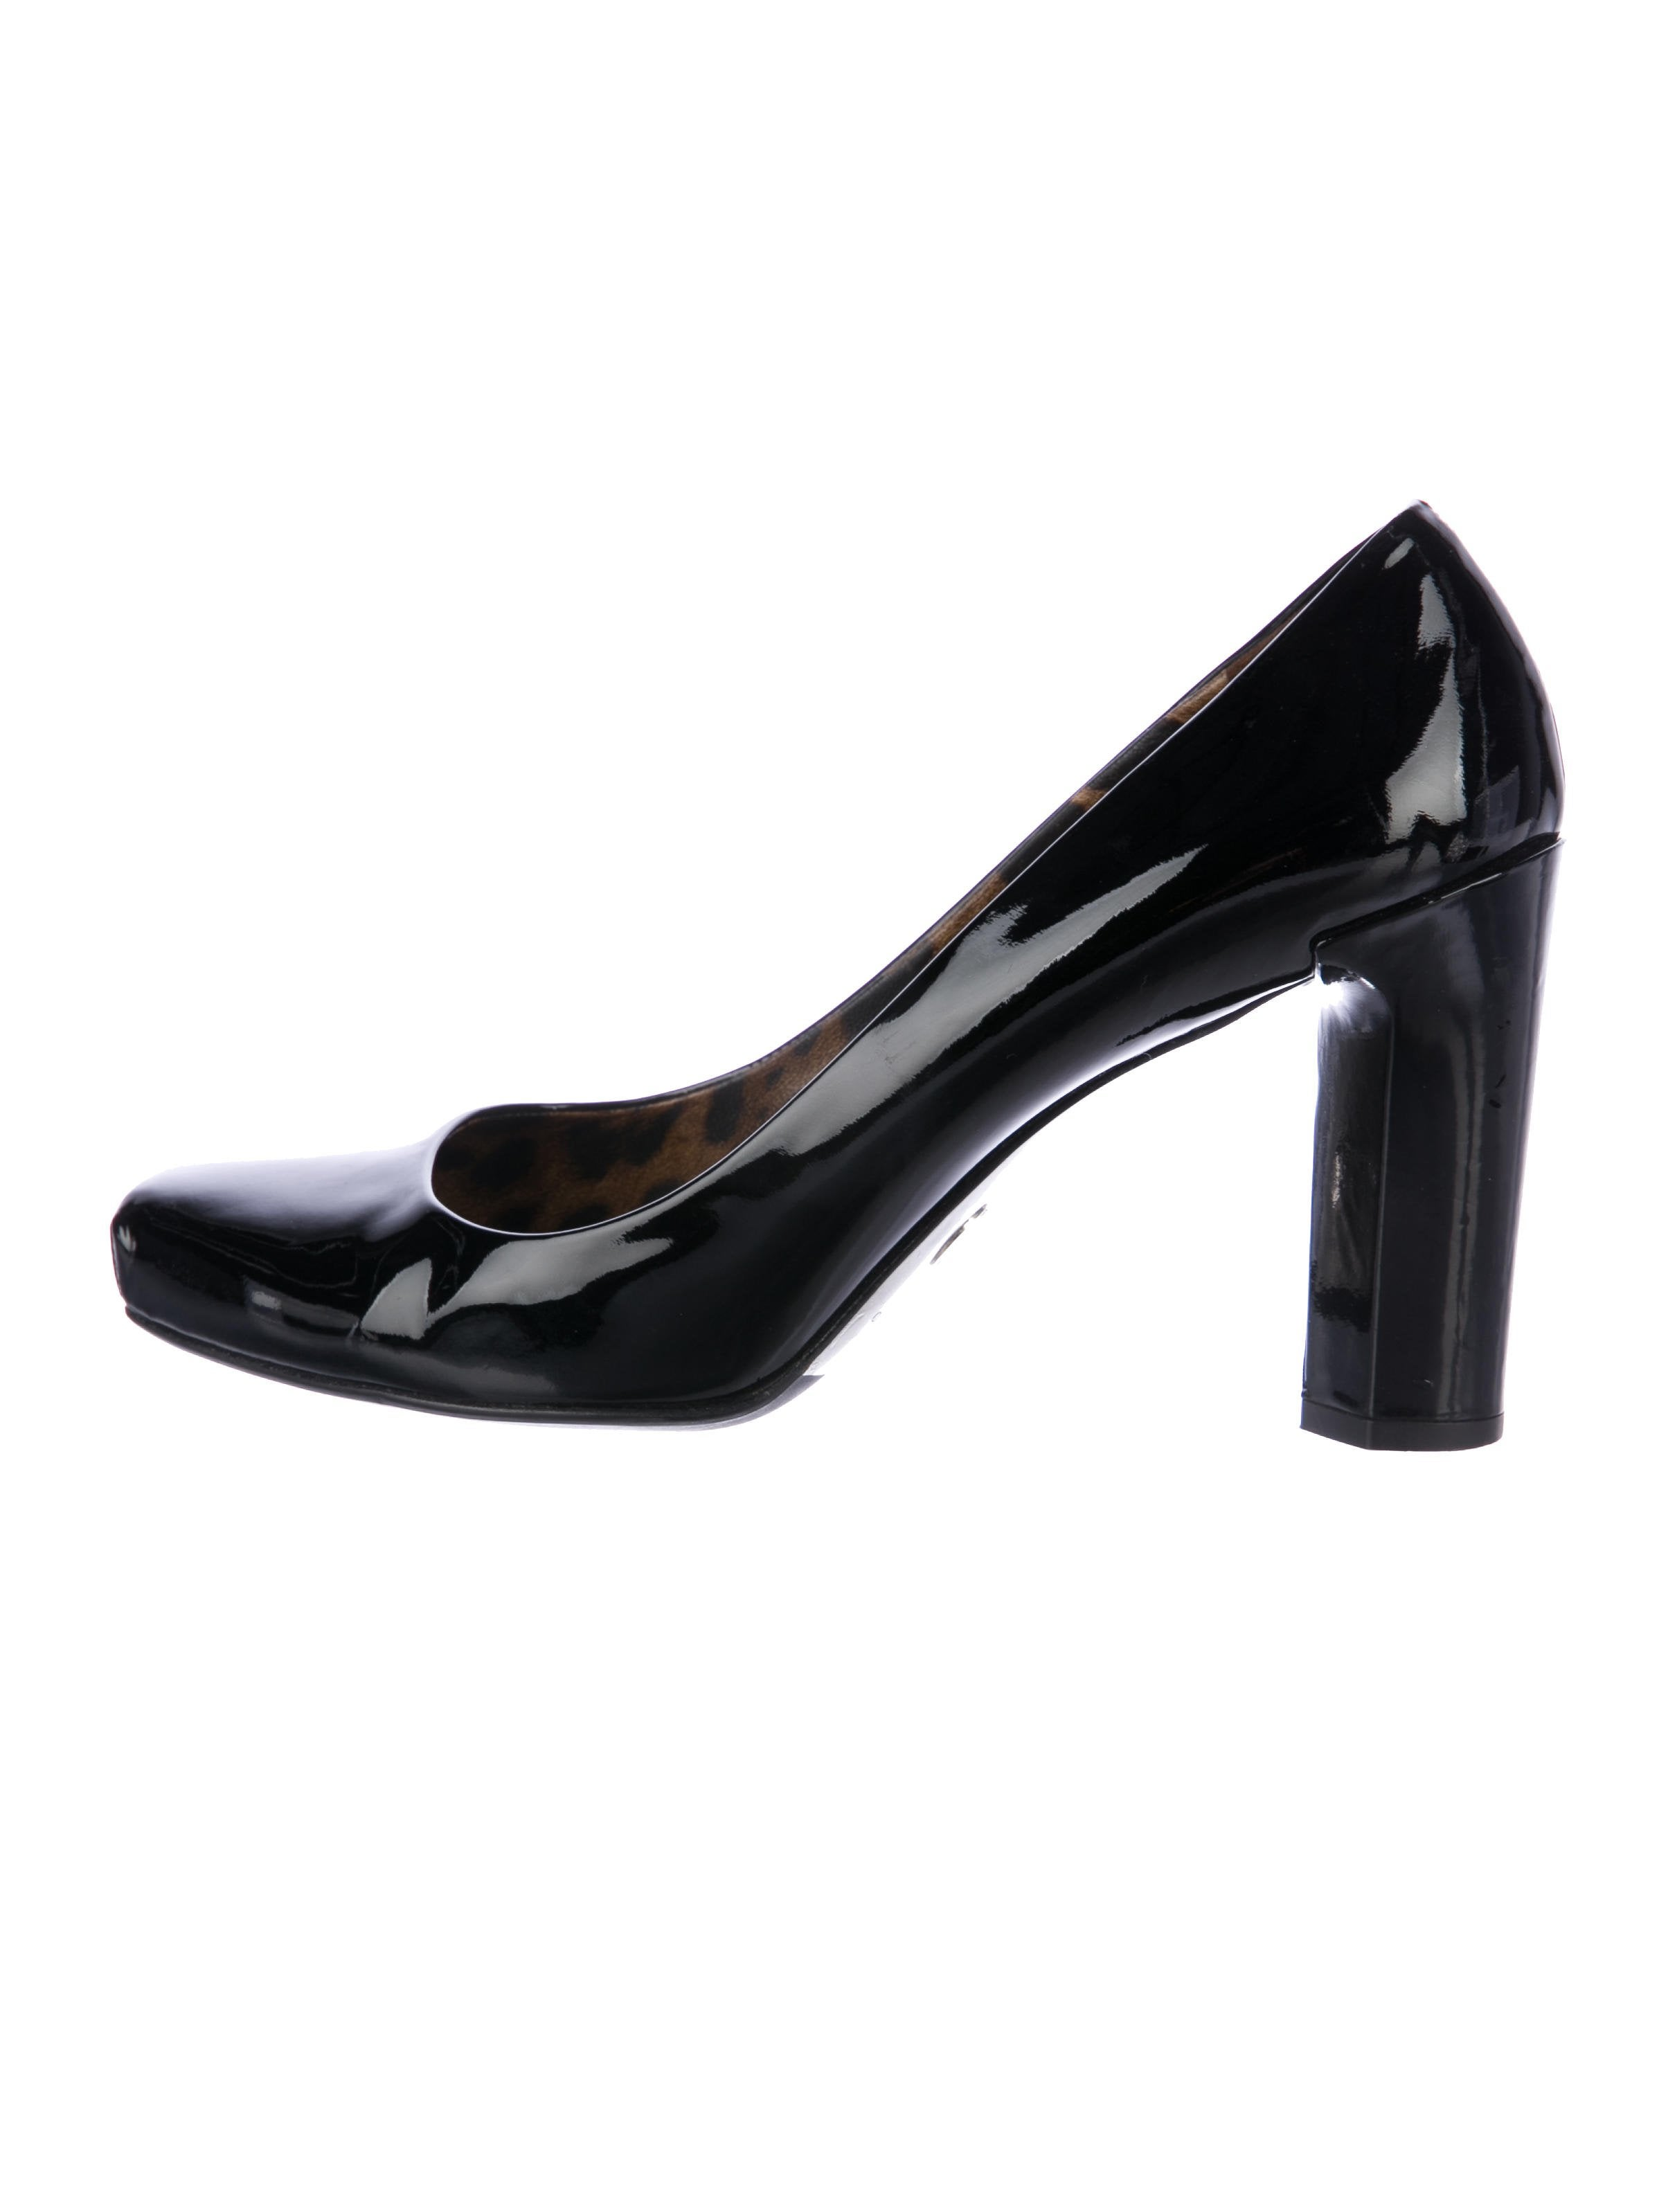 Dolce & Gabbana Patent Square-Toe Pumps sale discount outlet free shipping 2014 unisex cheap online cheap really cheap sale purchase jnYARYDIO